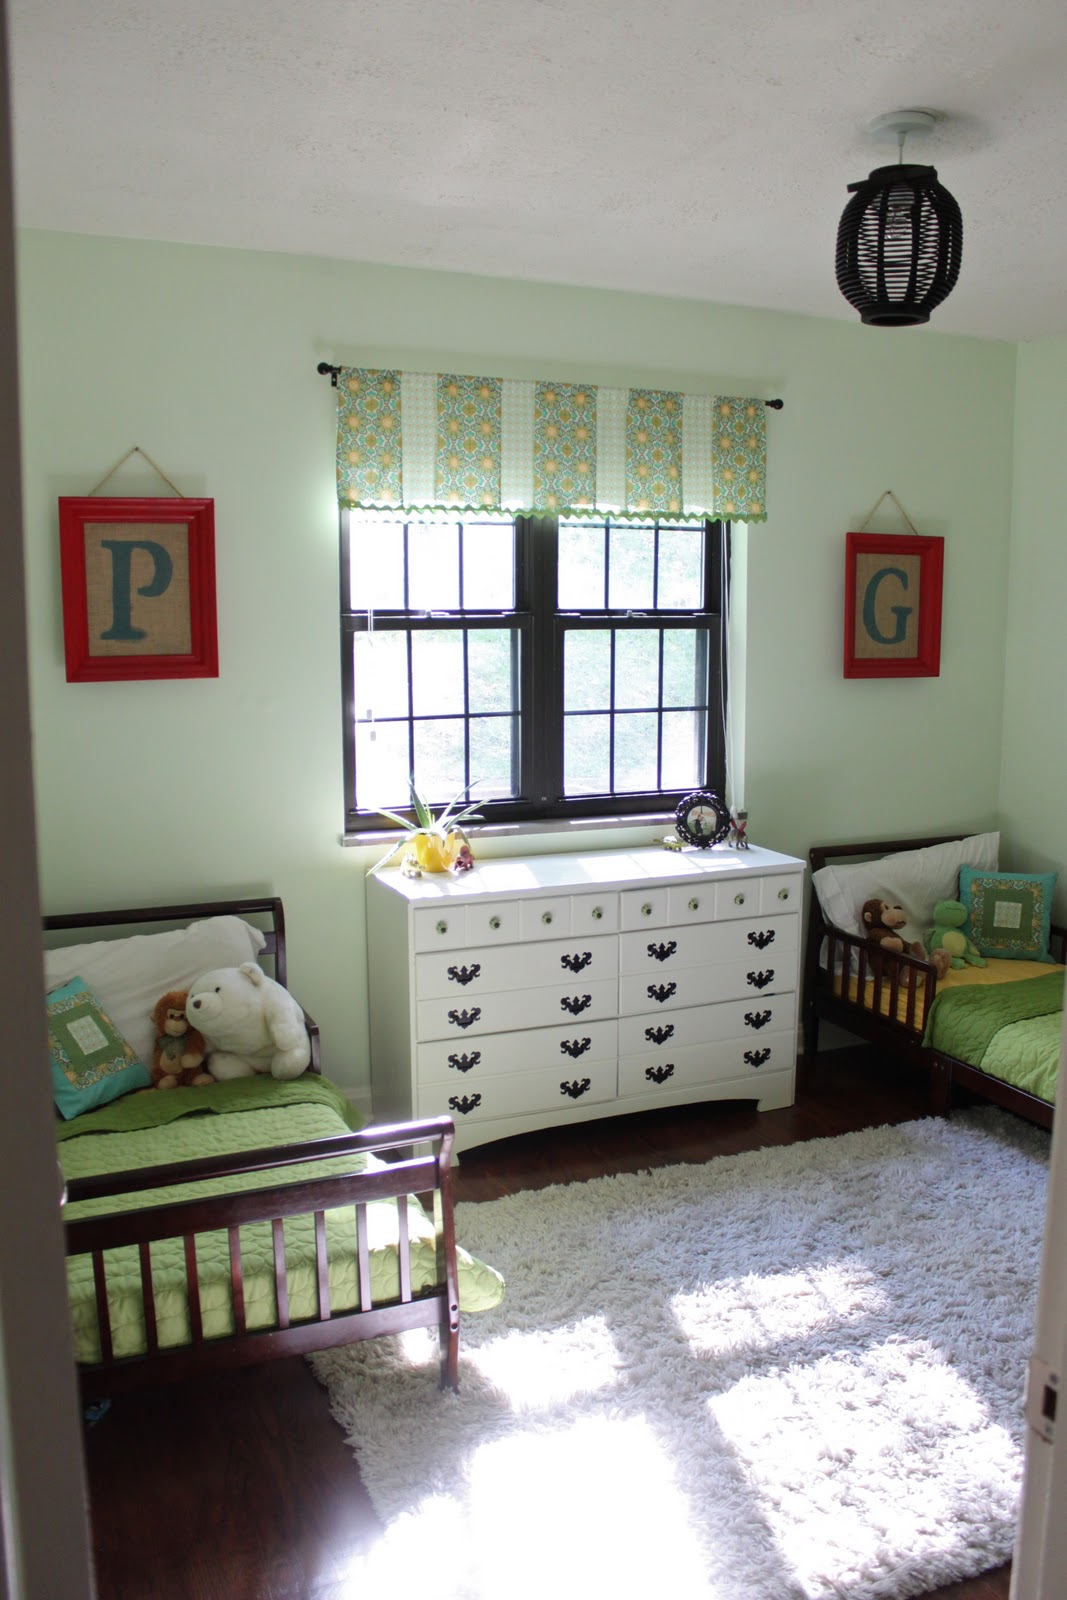 Twin Boys Bedroom Ideas: Just For Fun: Name Games Etc